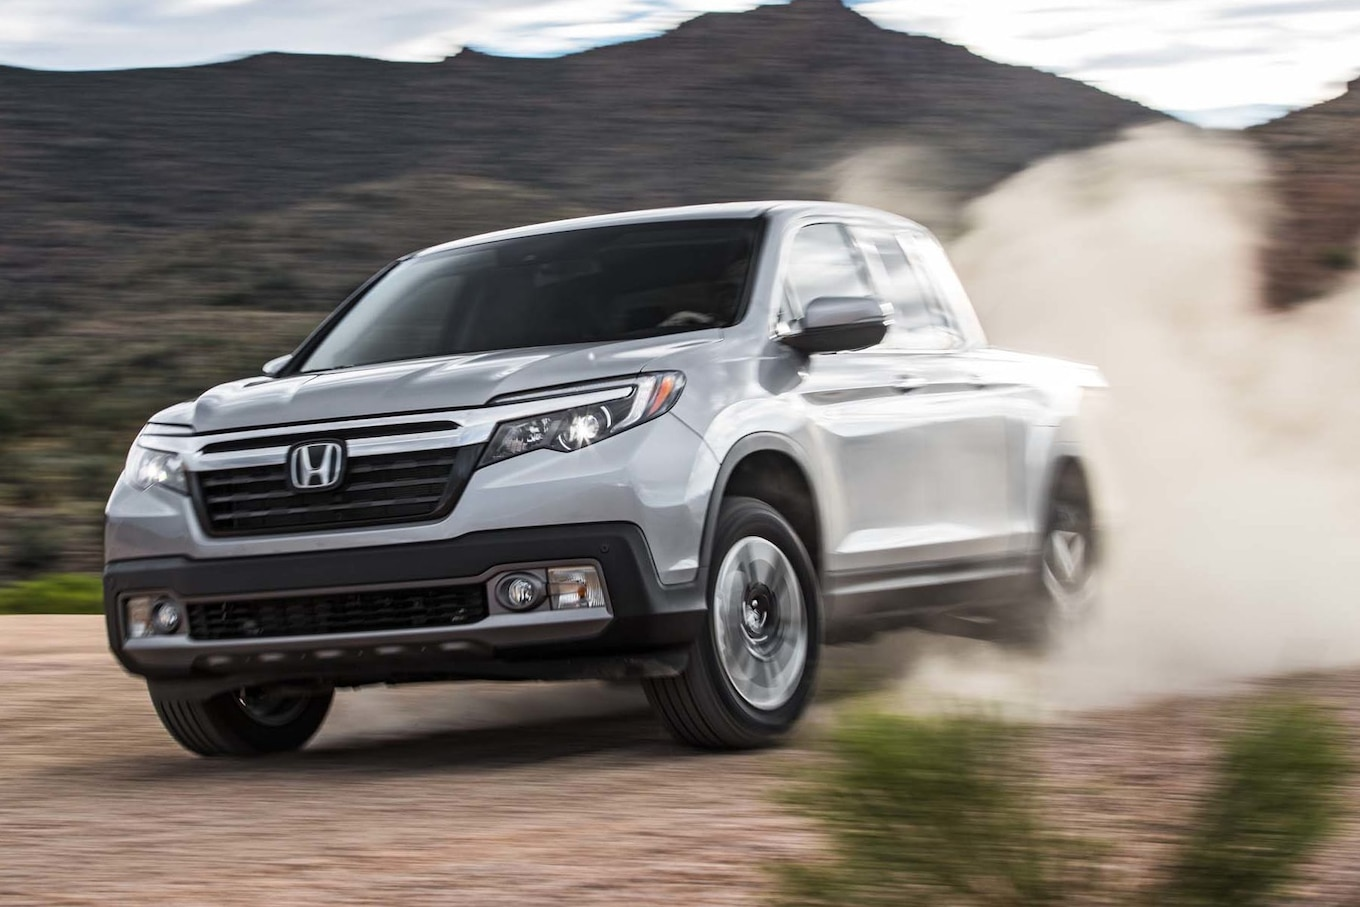 2017 Honda Ridgeline AWD First Test: The Trucklet, Revised